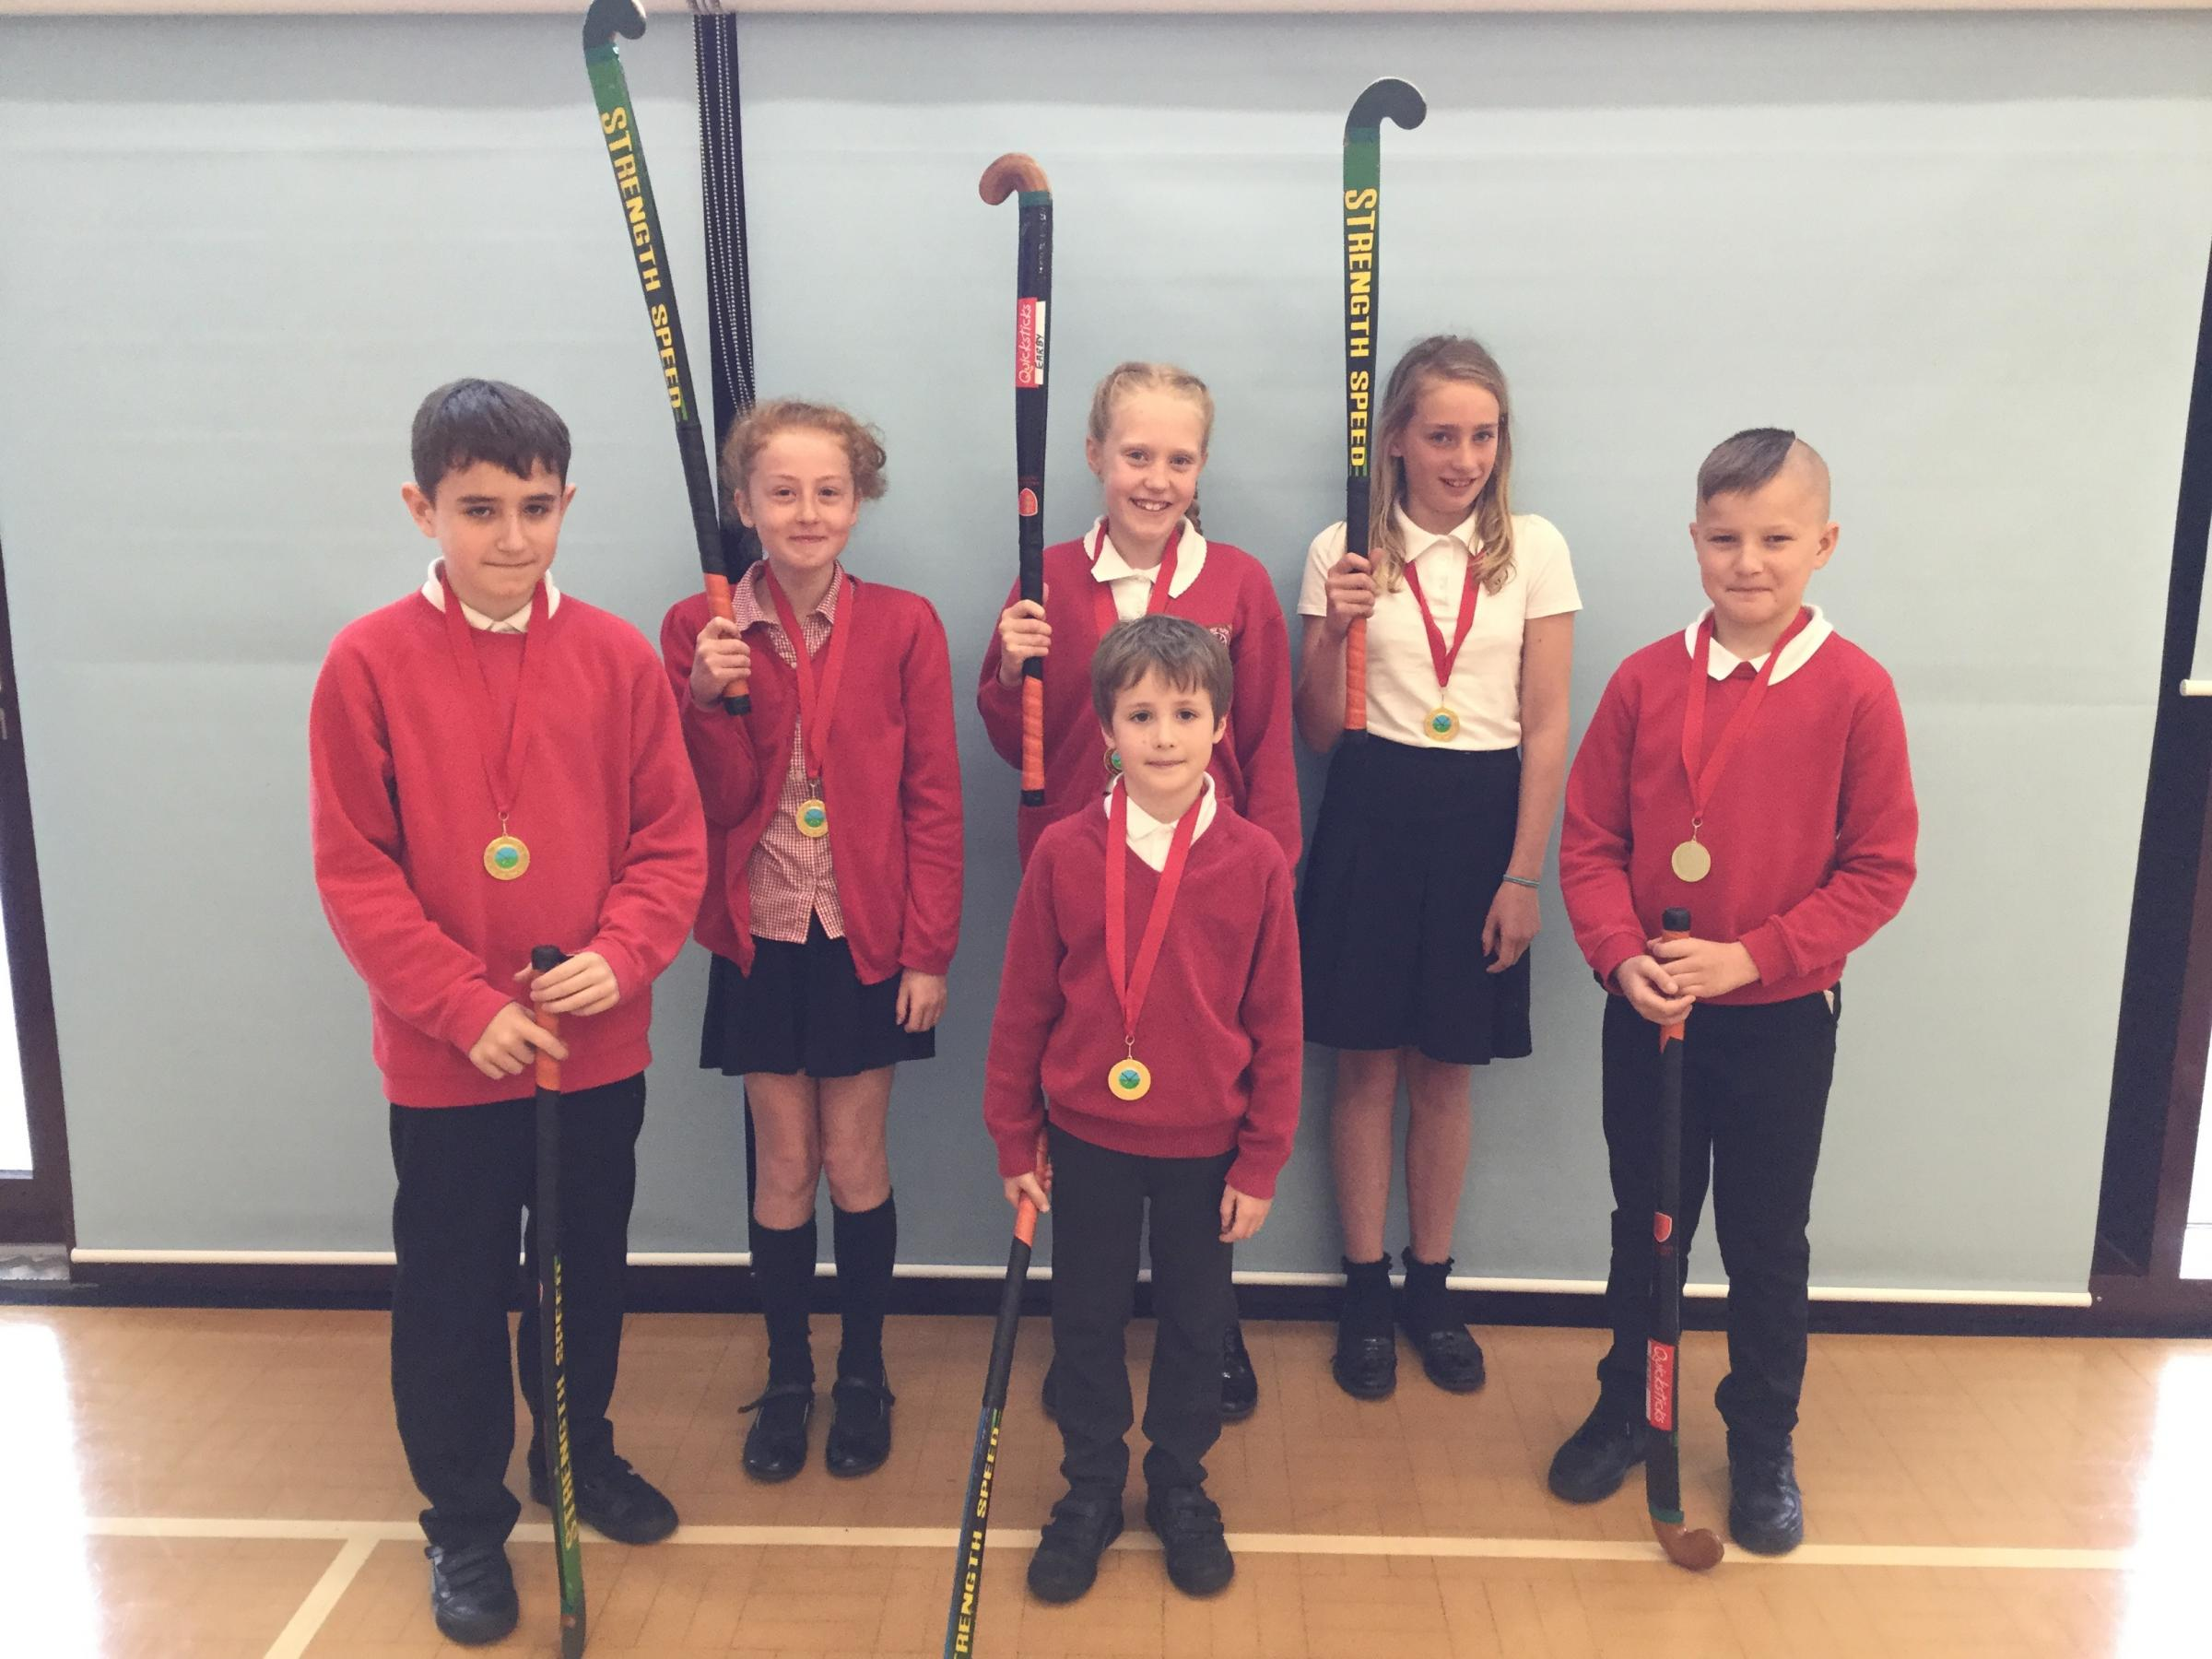 Pupils from Earby Springfield Primary School won the 2019 Pendle Hockey Tournament